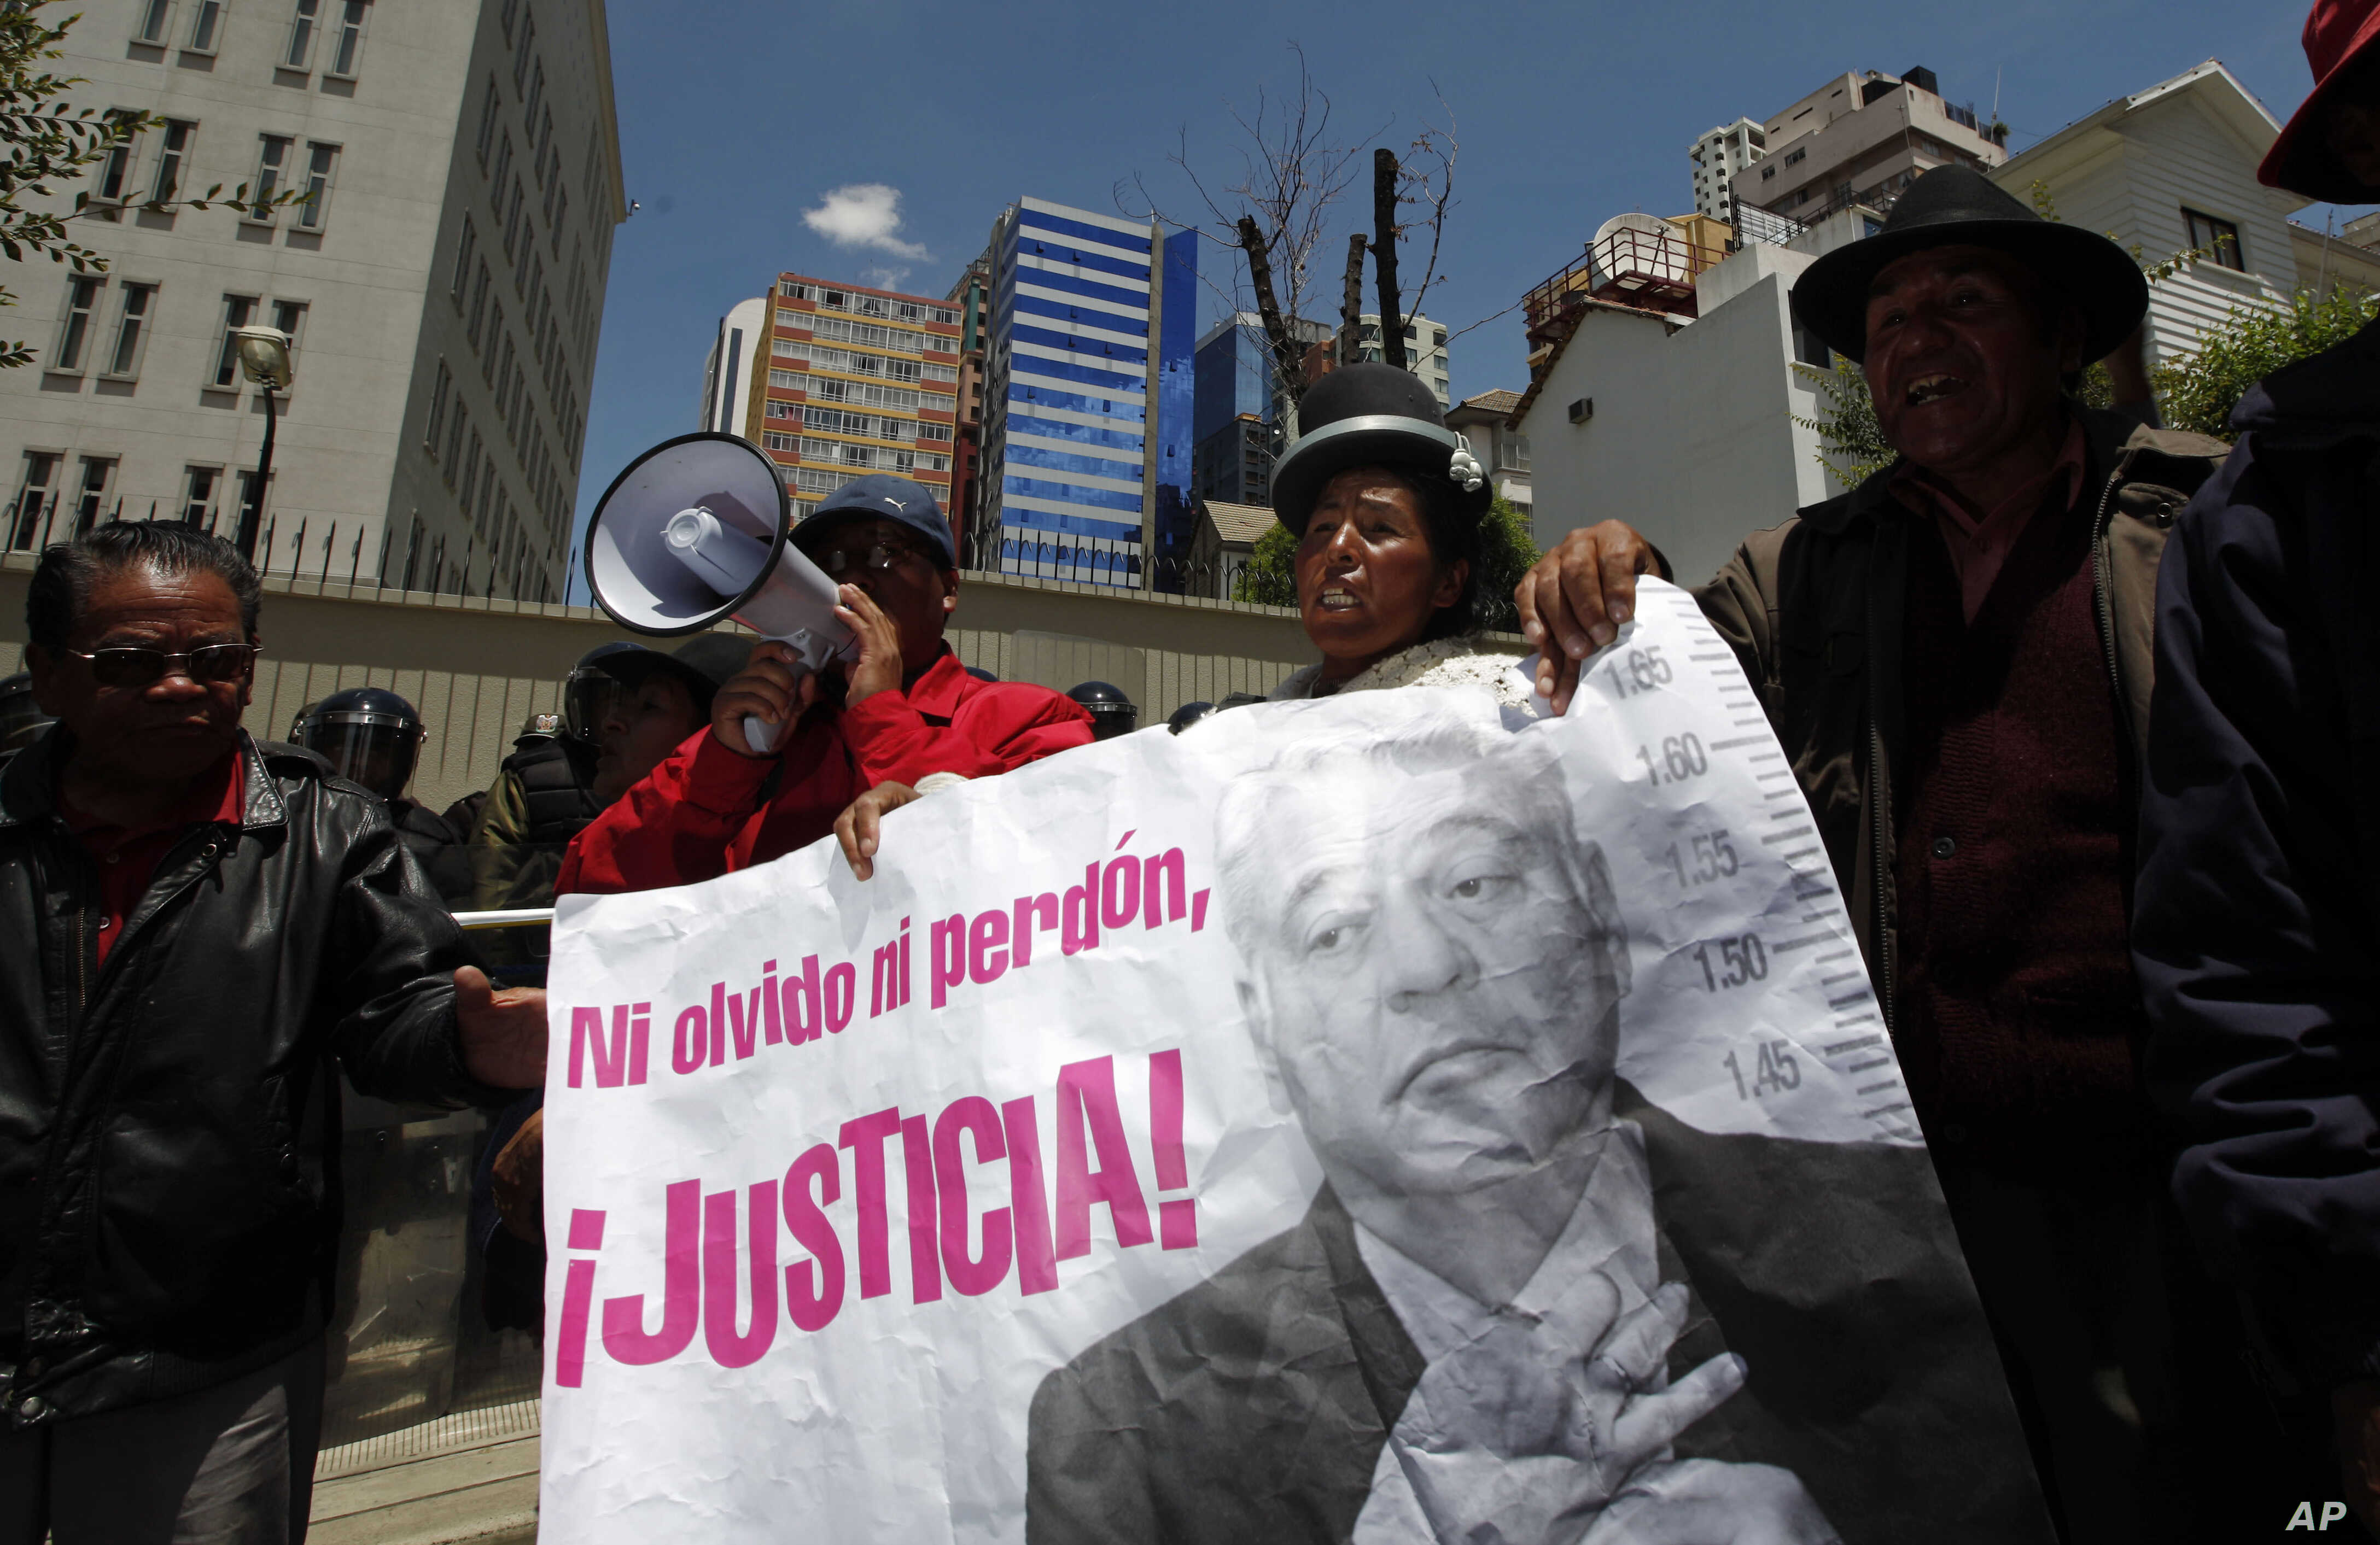 """FILE - Protesters hold a banner showing an image of Bolivia's former President Gonzalo Sanchez de Lozada that reads in Spanish """"Neither forget nor forgive, Justice!"""" during a protest demanding his extradition outside the U.S. embassy in La Paz, Boliv"""